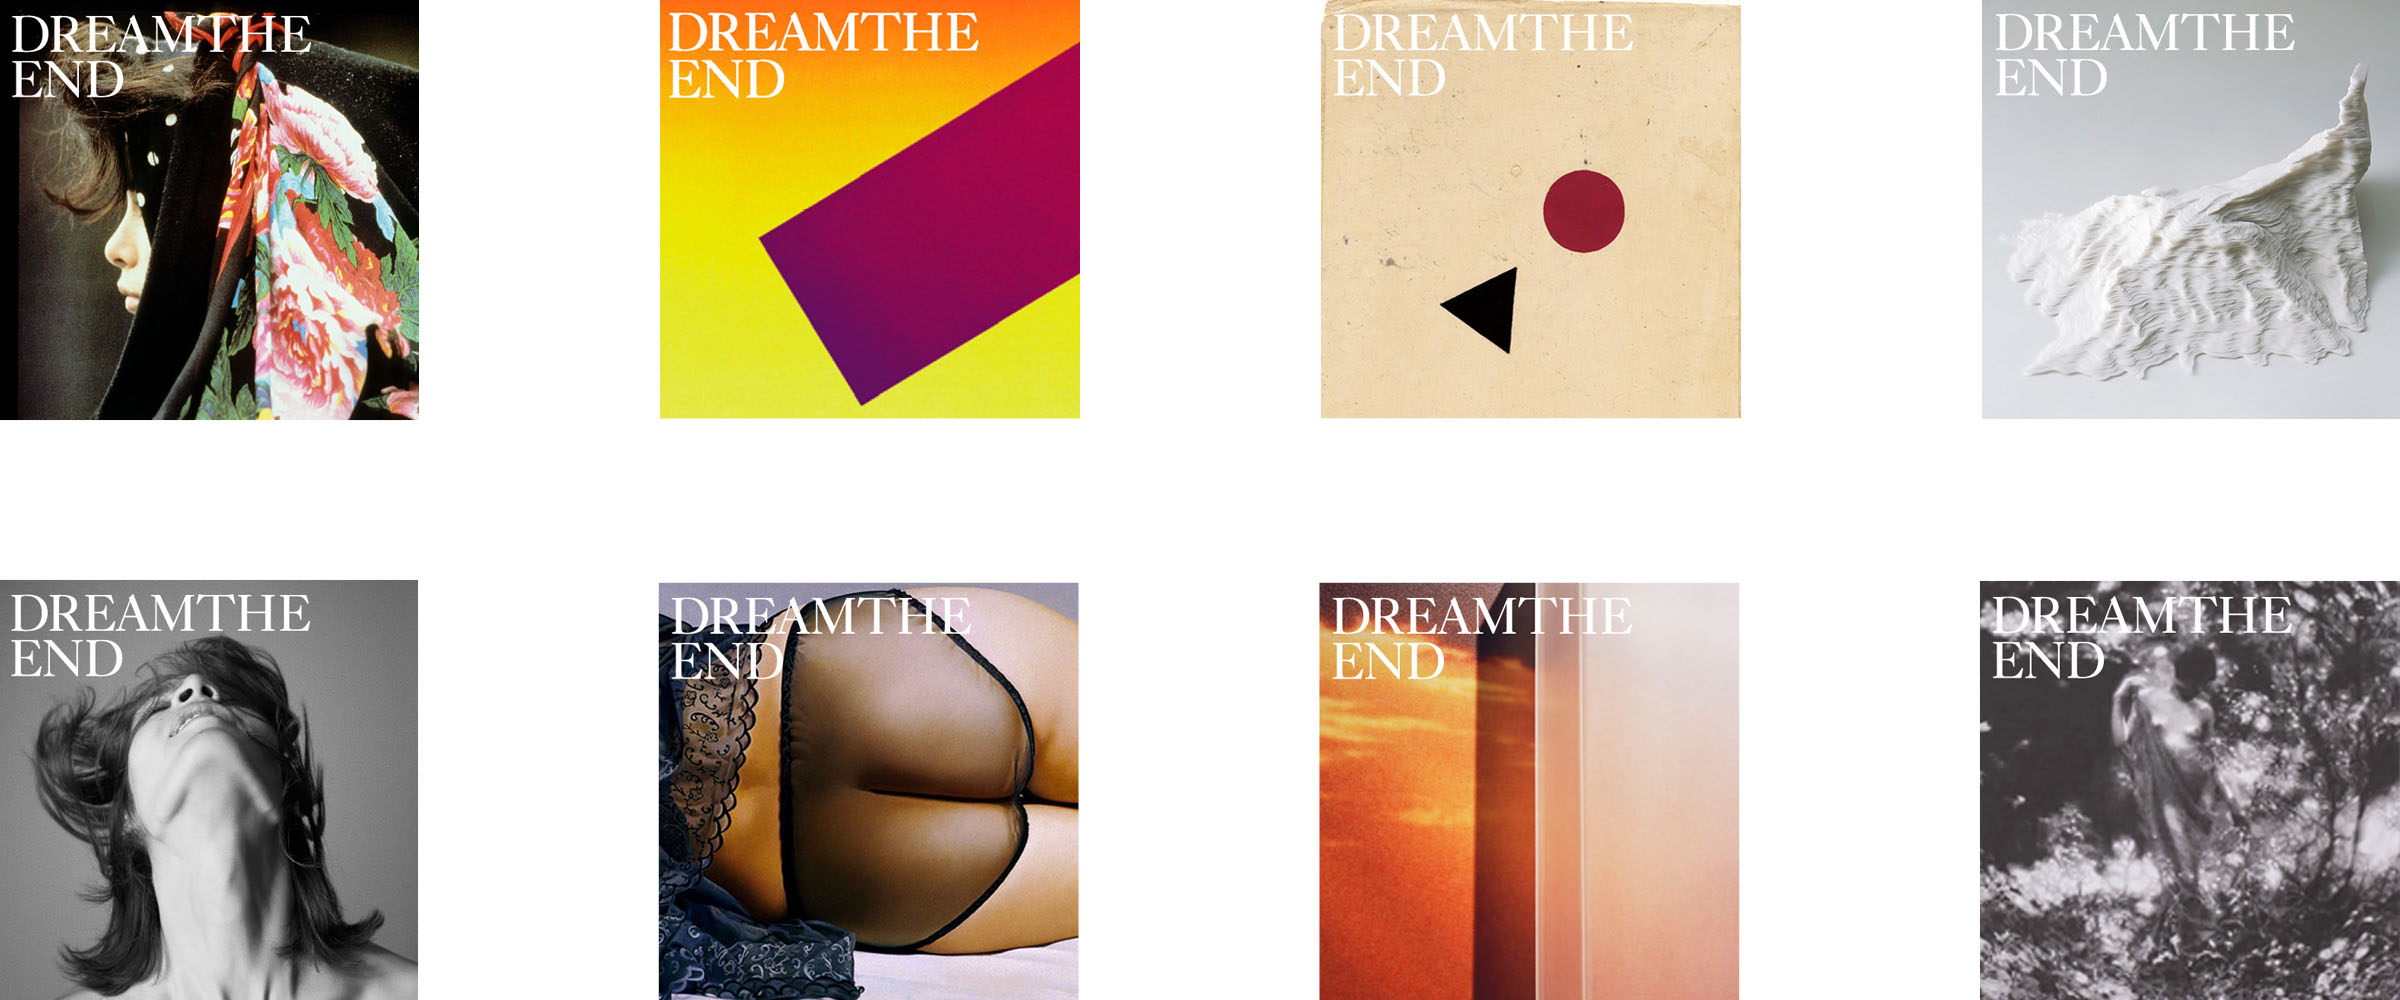 Different editions from the dream the end magazine publications.